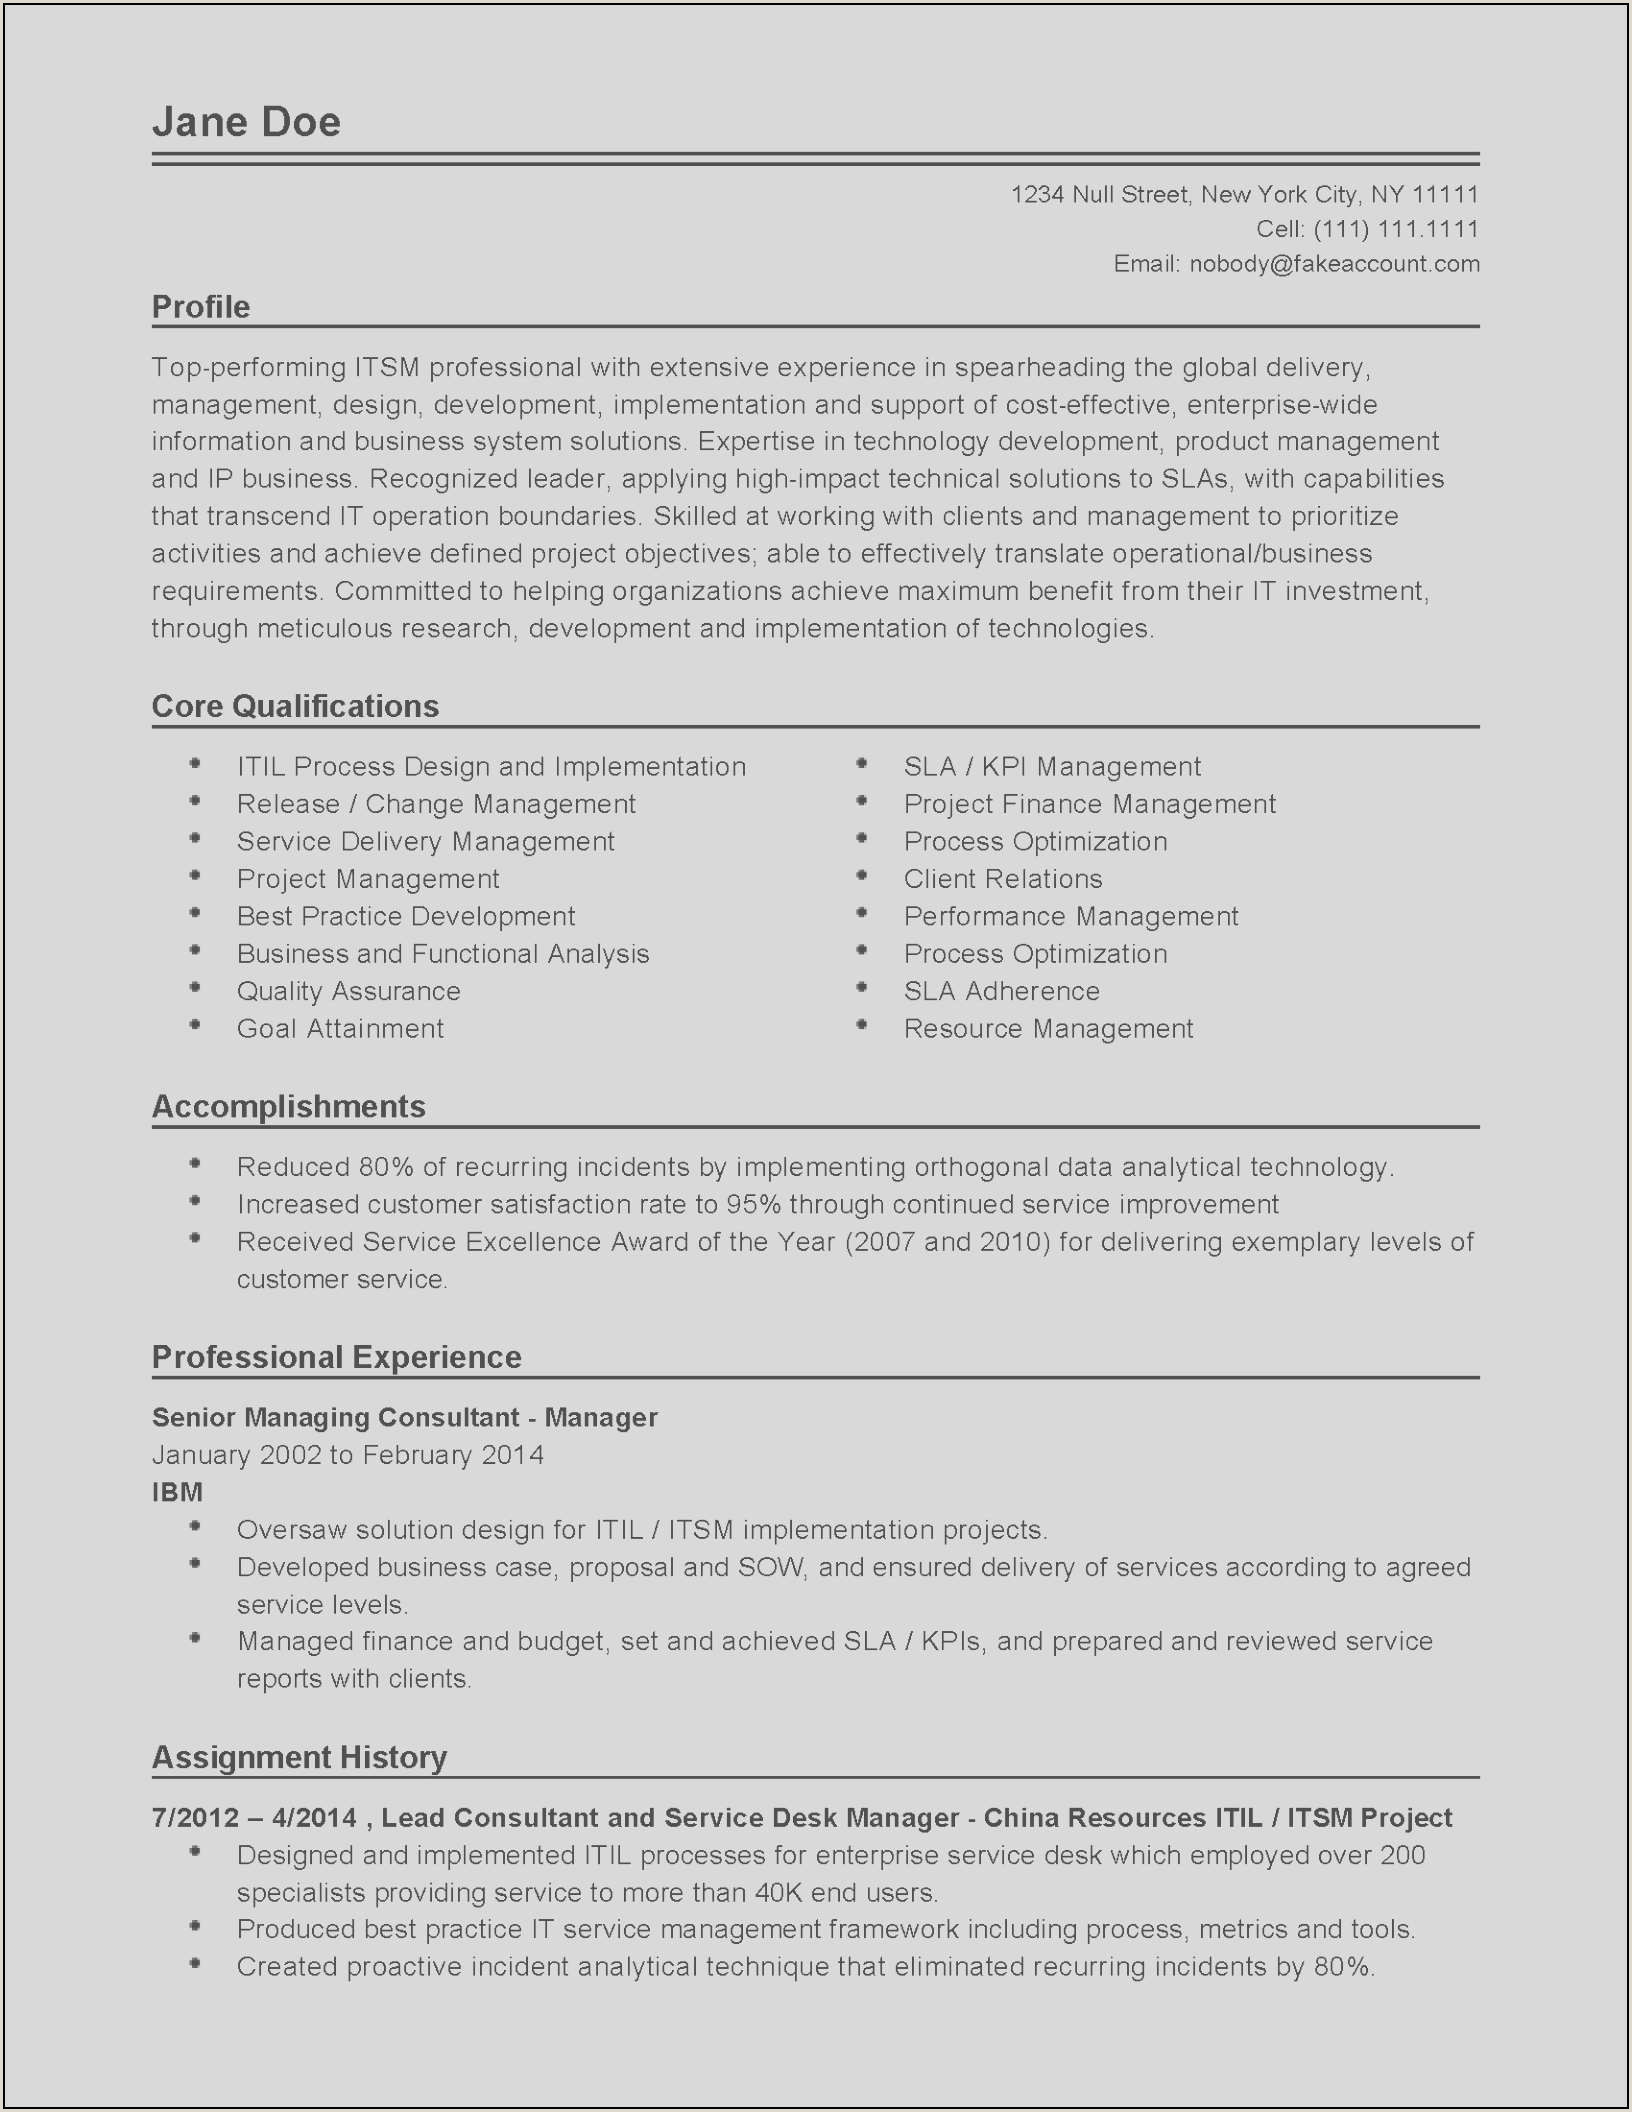 Cover Letter for Pharmacy Tech Cover Letter Exampl Elegant Pharmacy Tech Resume Template